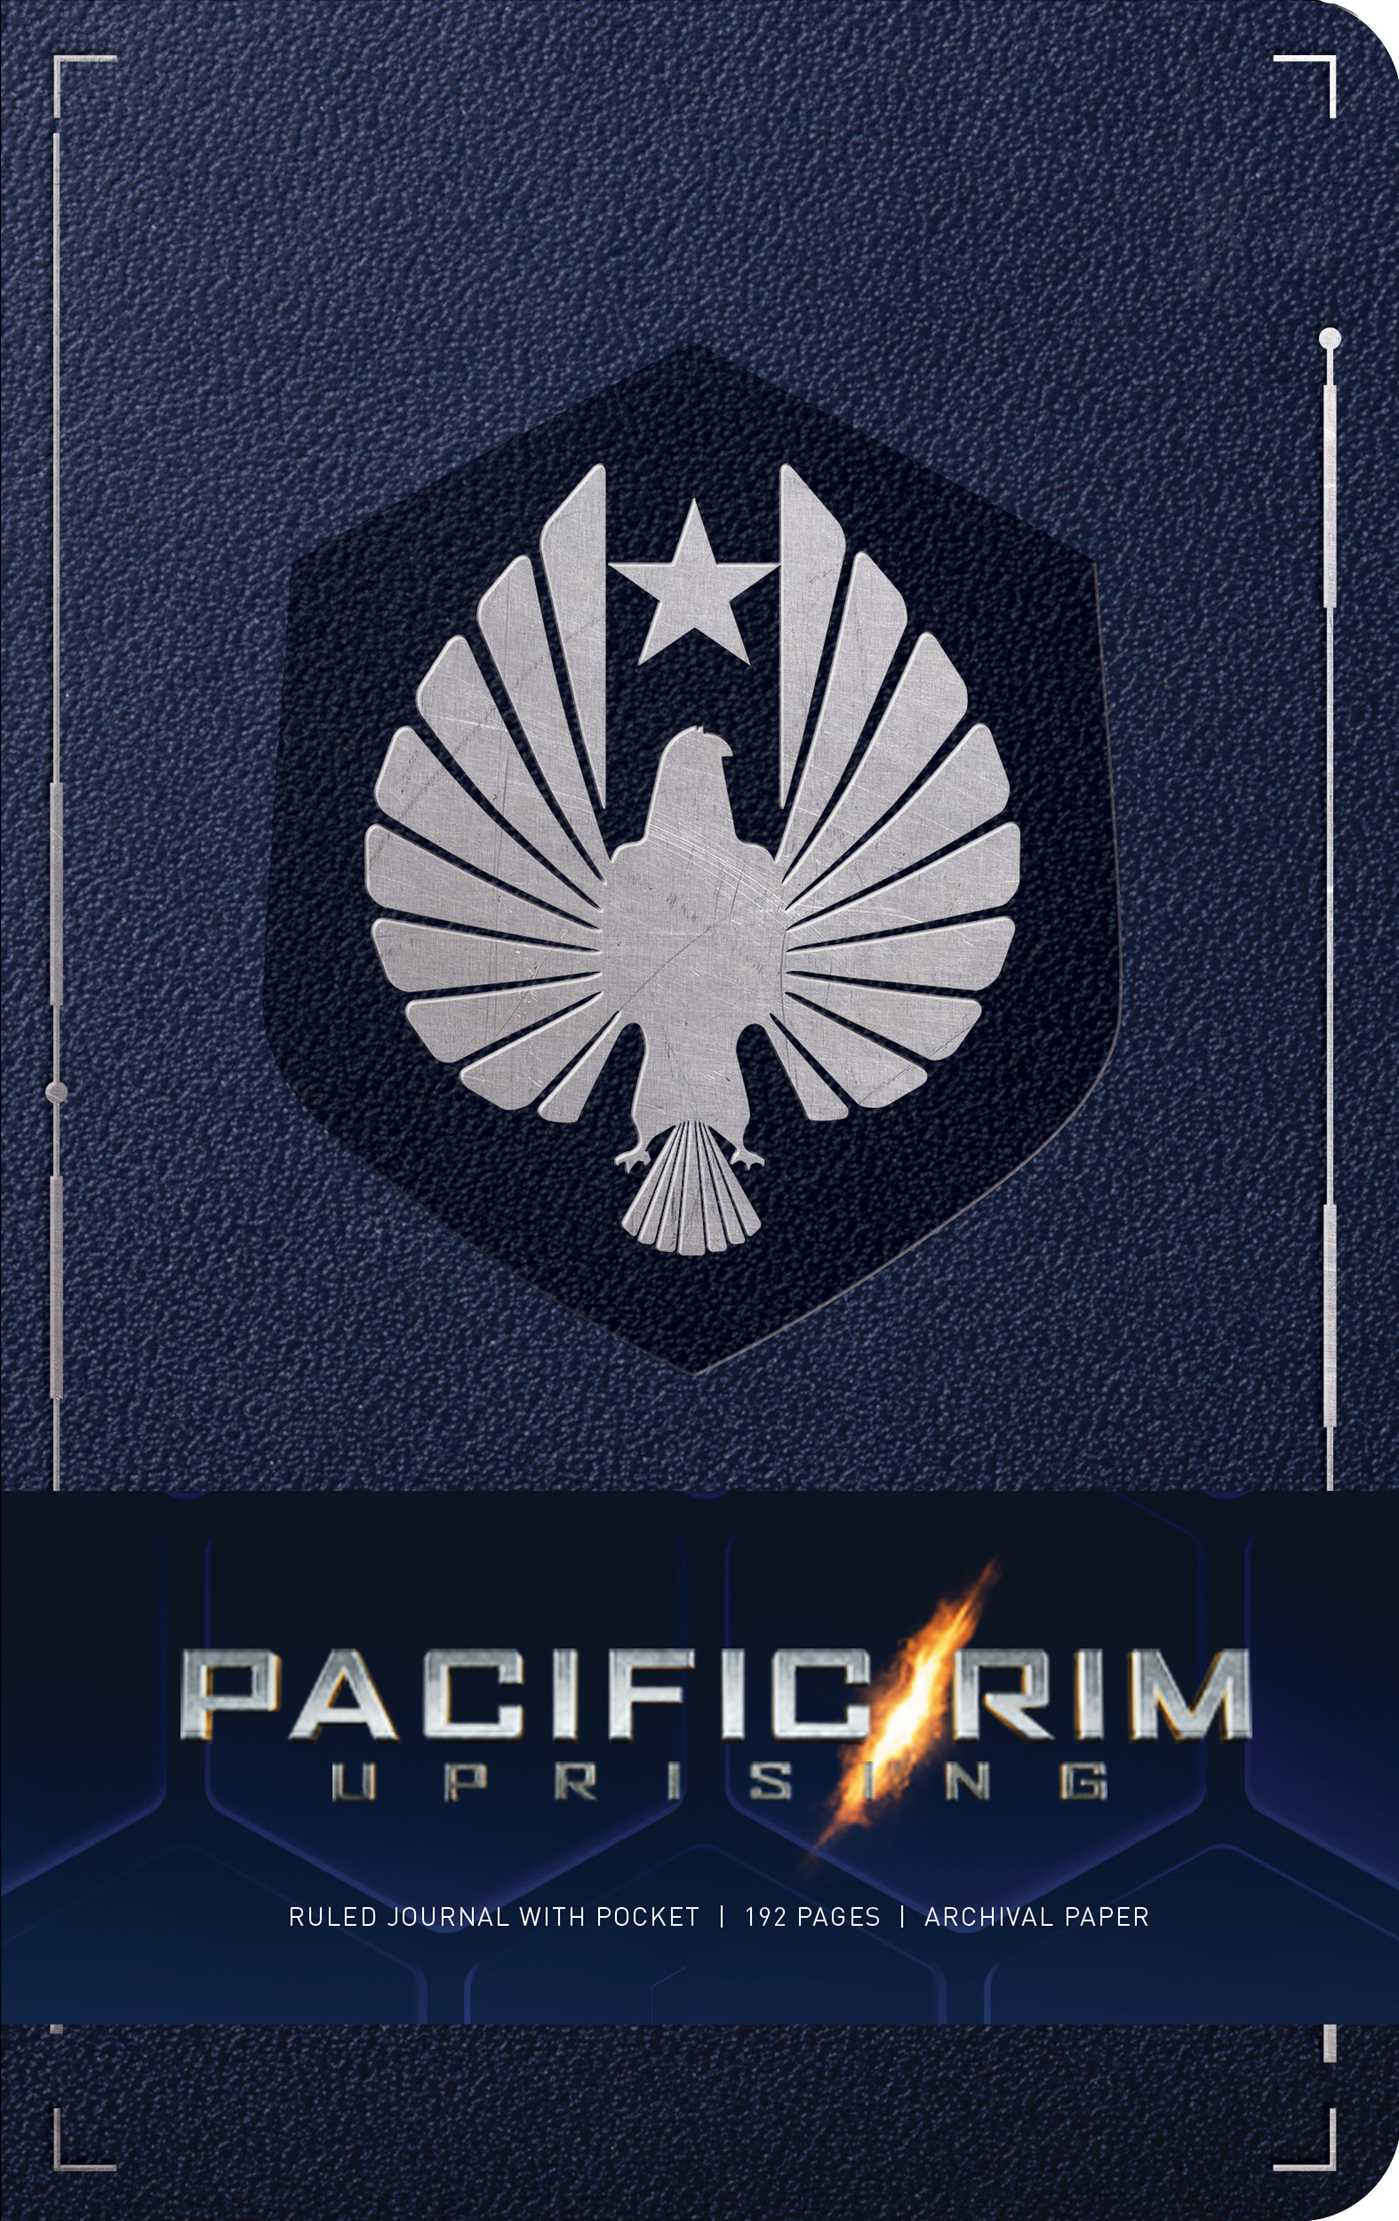 pacific rim uprising hardcover ruled journal